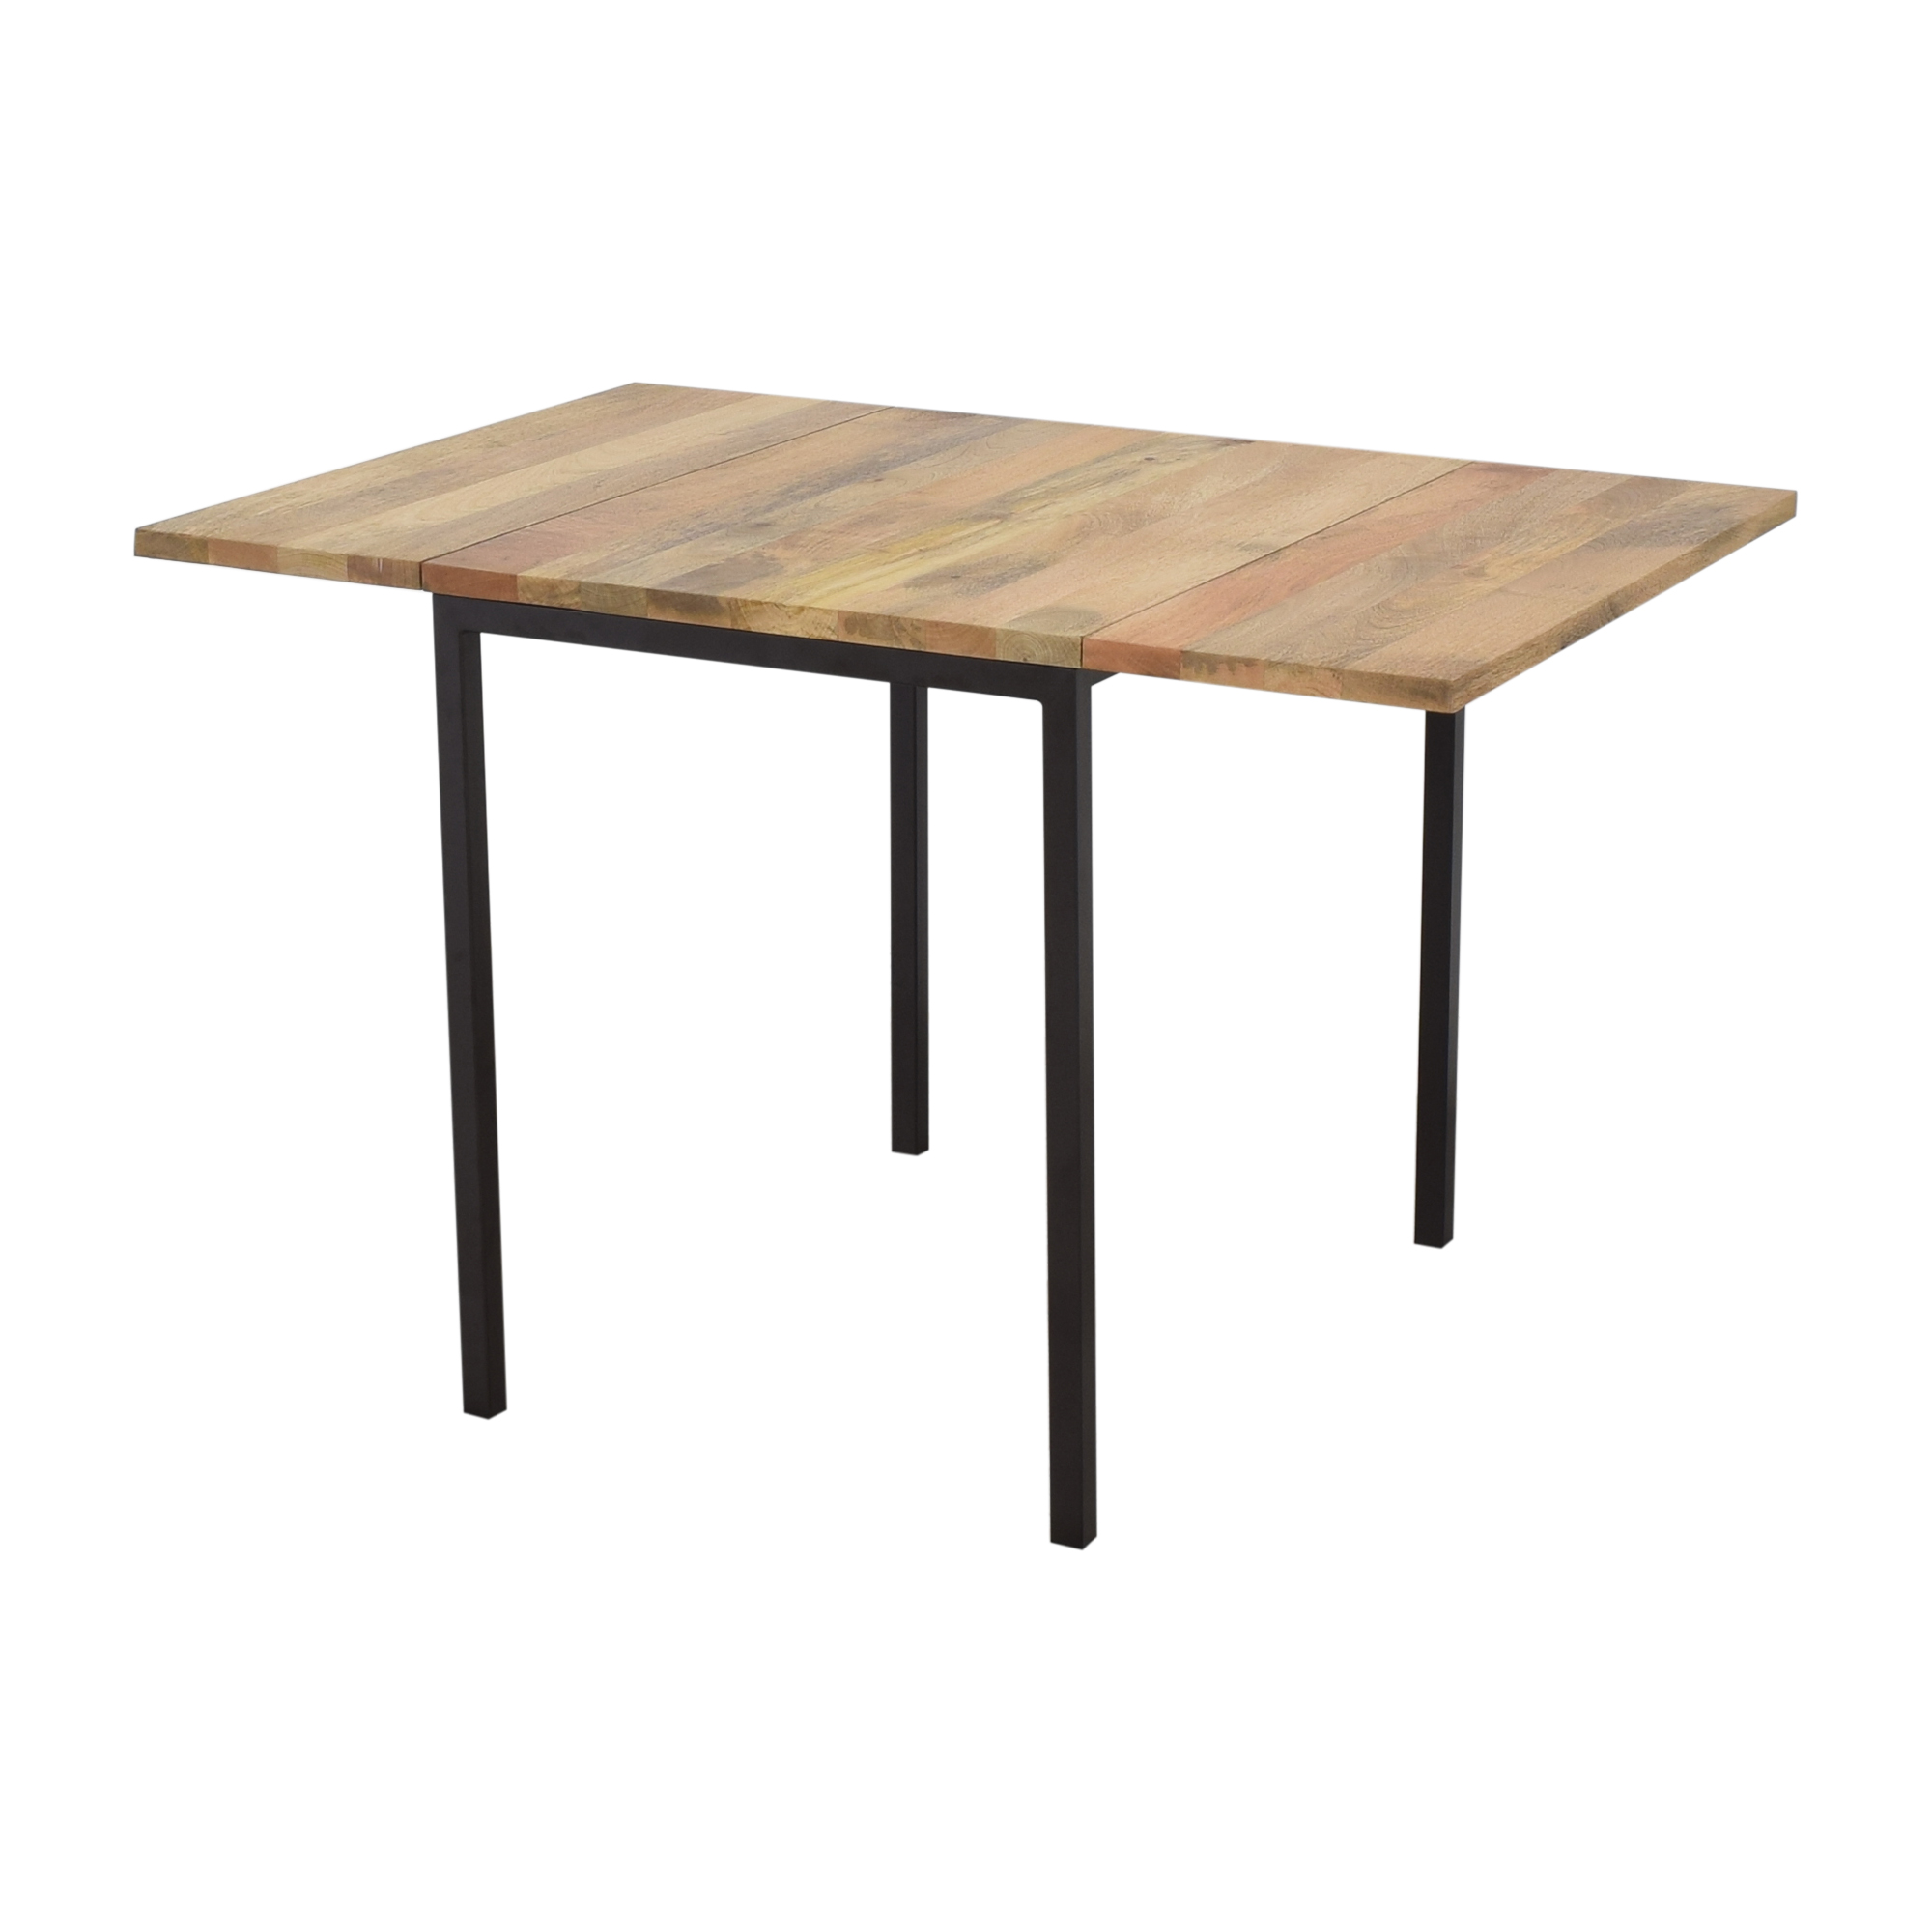 West Elm West Elm Box Frame Drop Leaf Dining Table discount